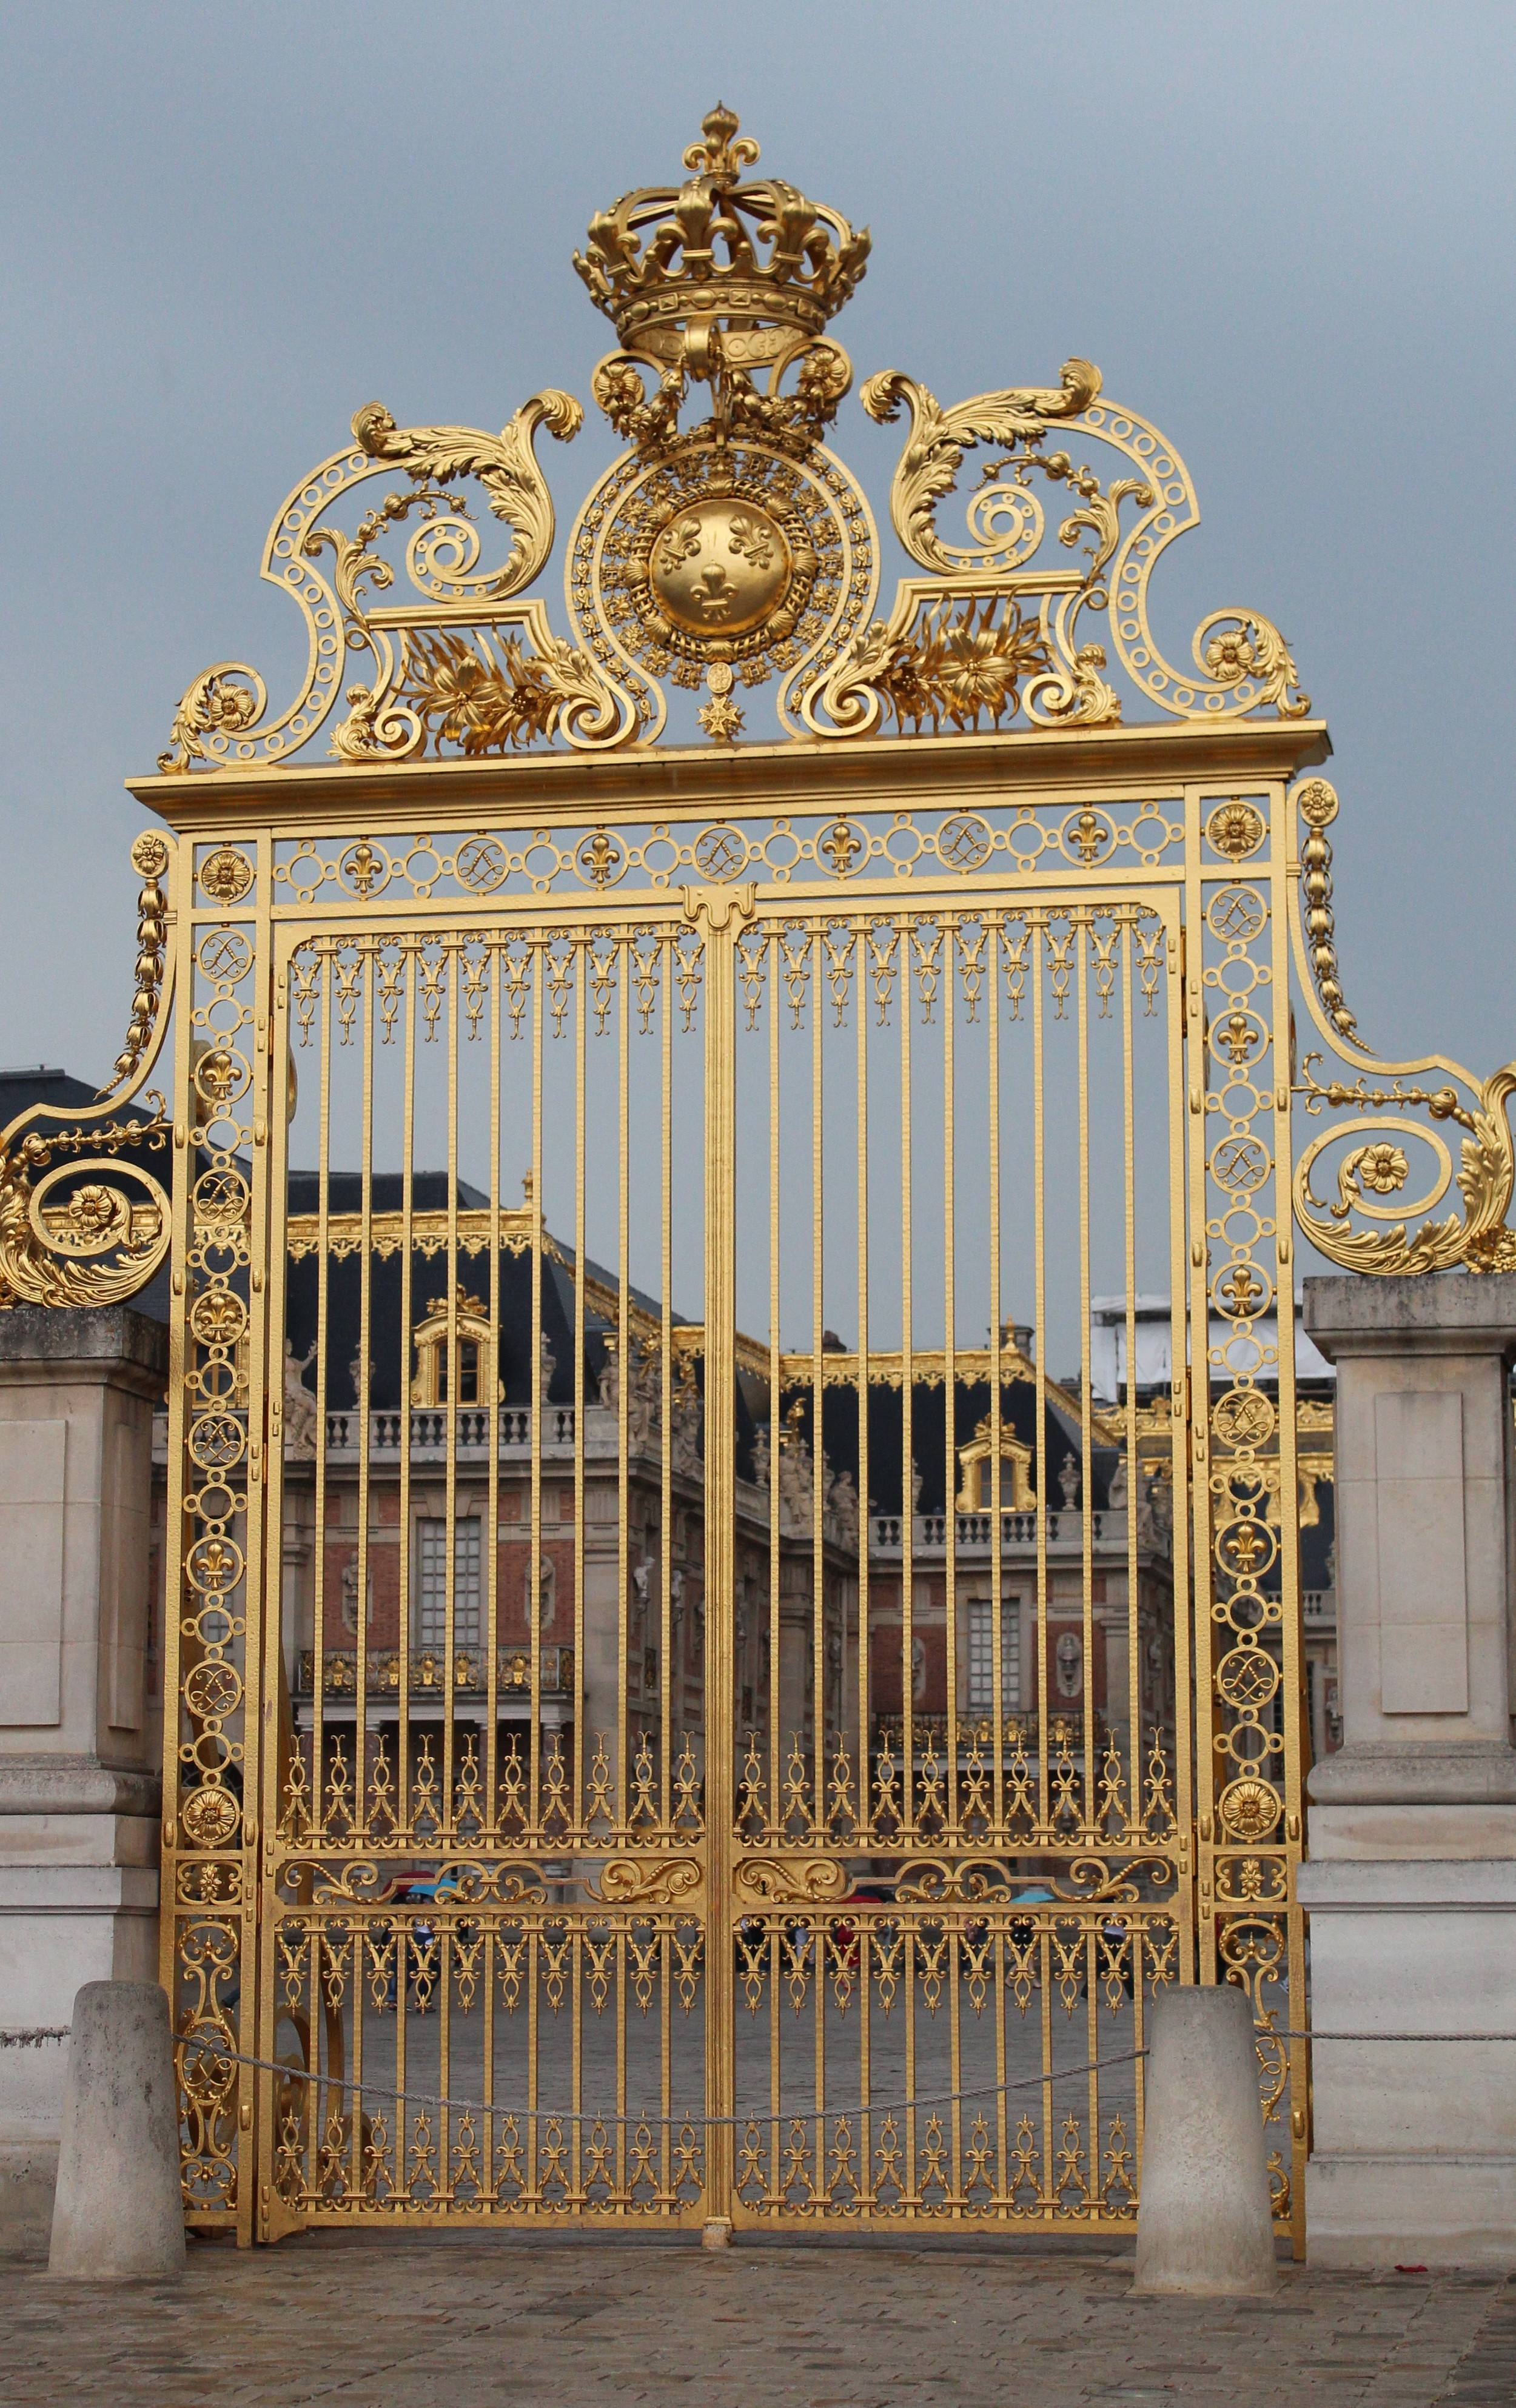 Gate Palace of Versailles